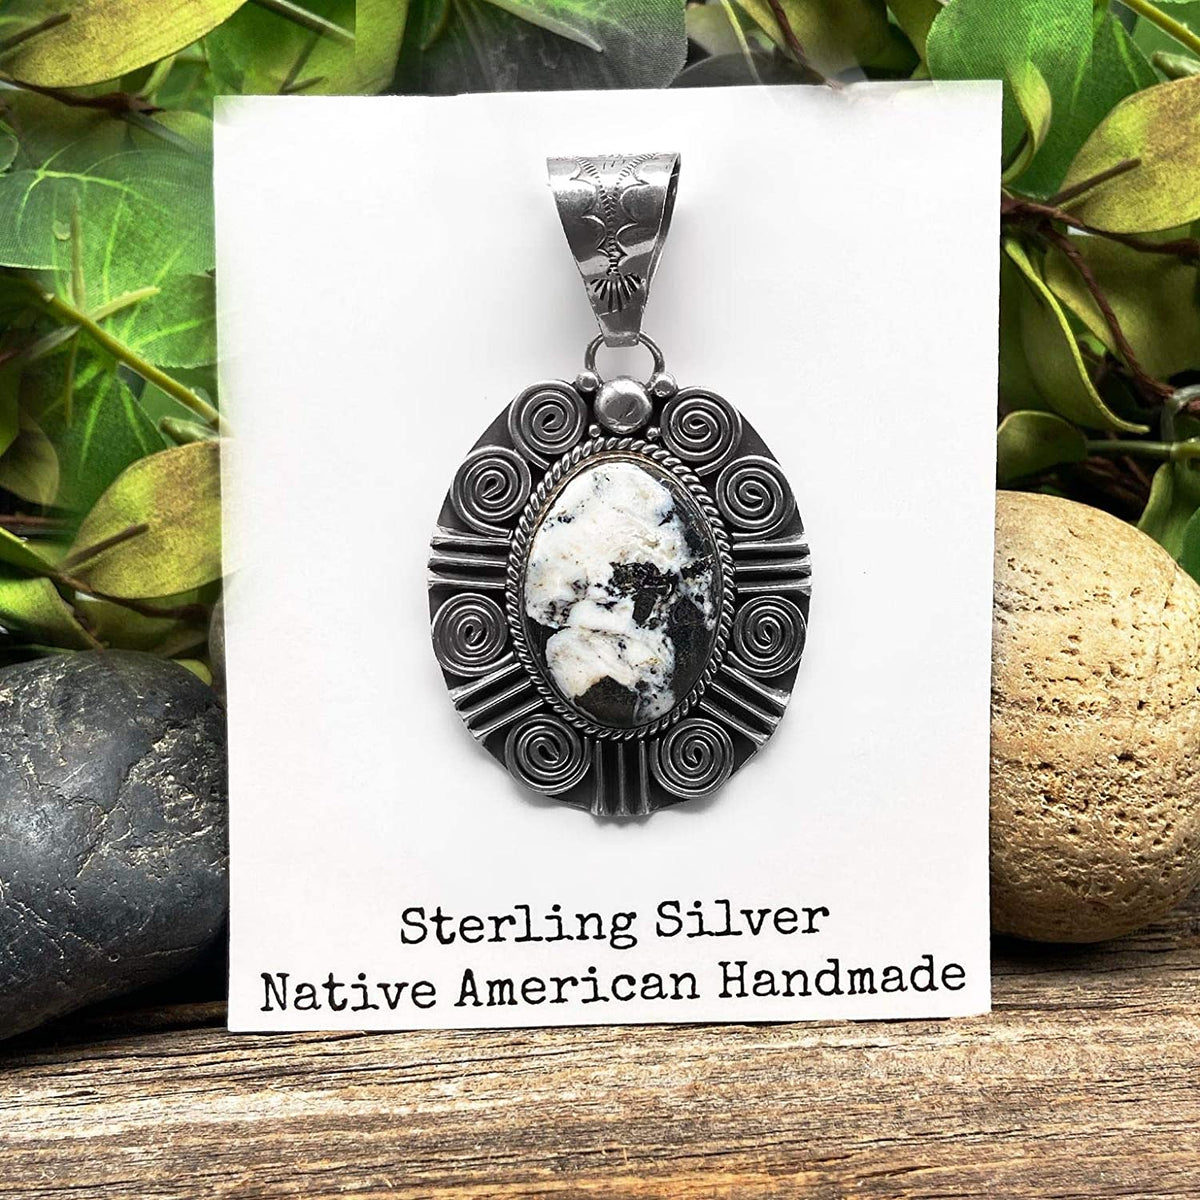 Genuine White Buffalo Stone Pendant, Sterling Silver, Authentic Navajo Native American USA Handmade, Artist Signed, Nickel Free, Southwest Jewelry